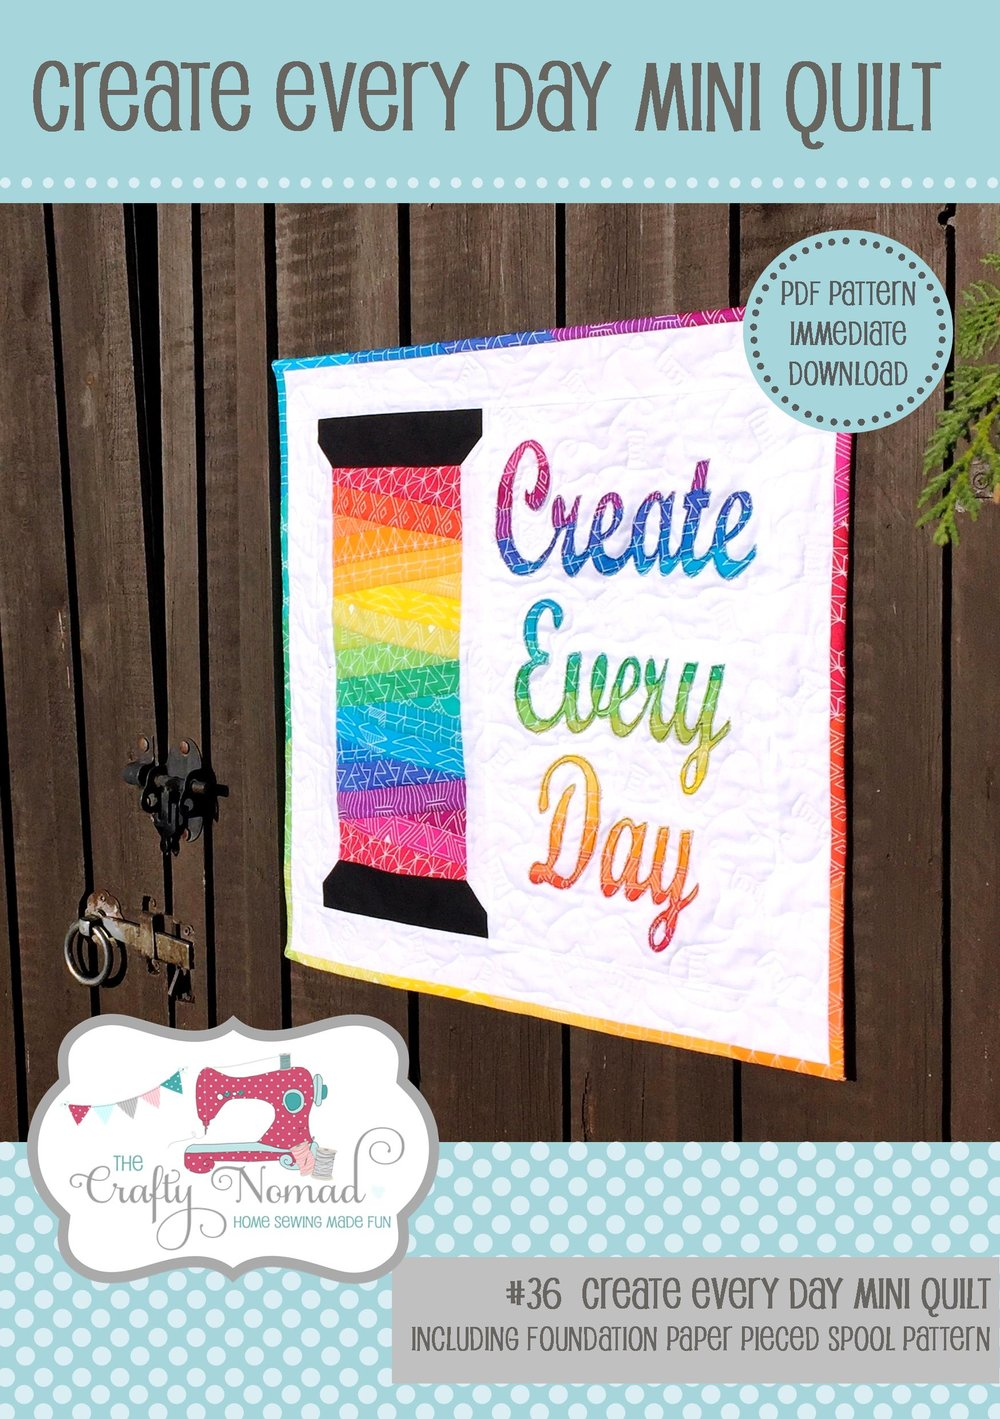 PDF Create Every Day Mini Quilt Front Page The Crafty Nomad 2.jpg